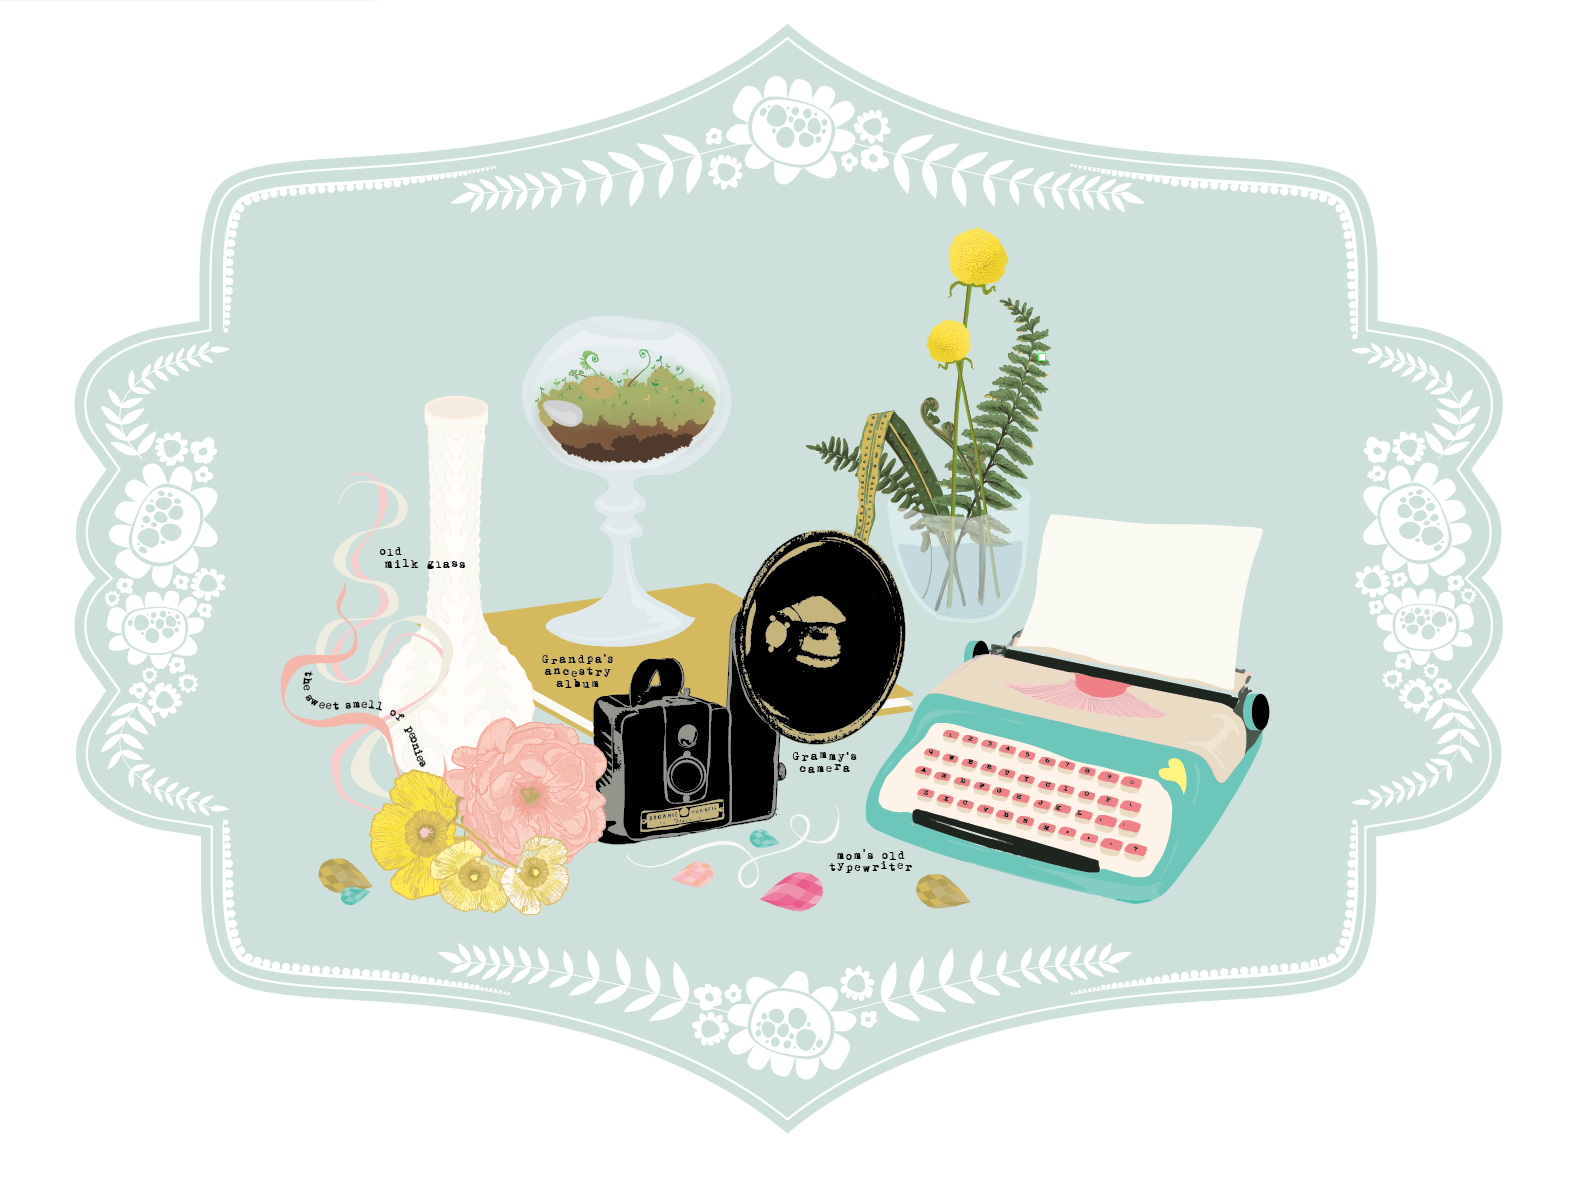 grandmas-house-illustration-peony-camera-milk-glass